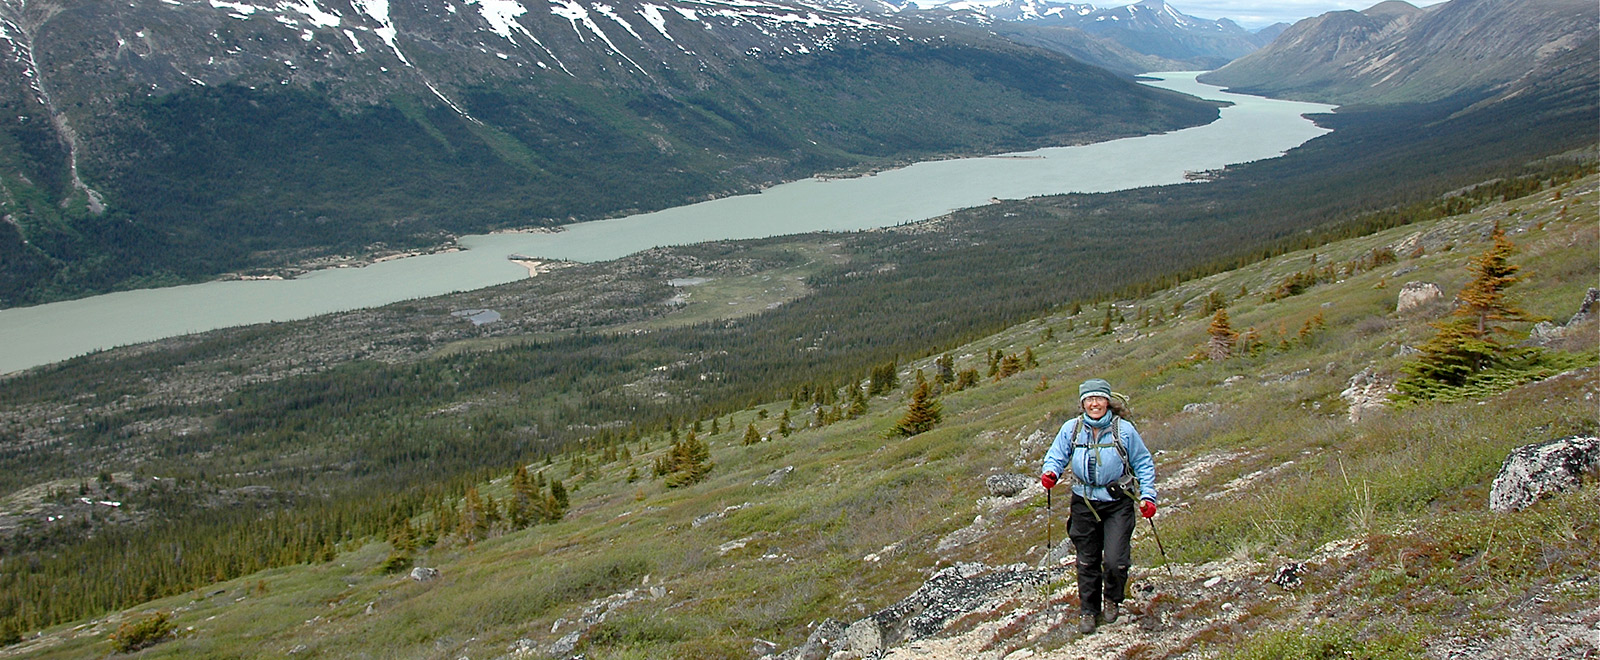 hiking yukon landscape